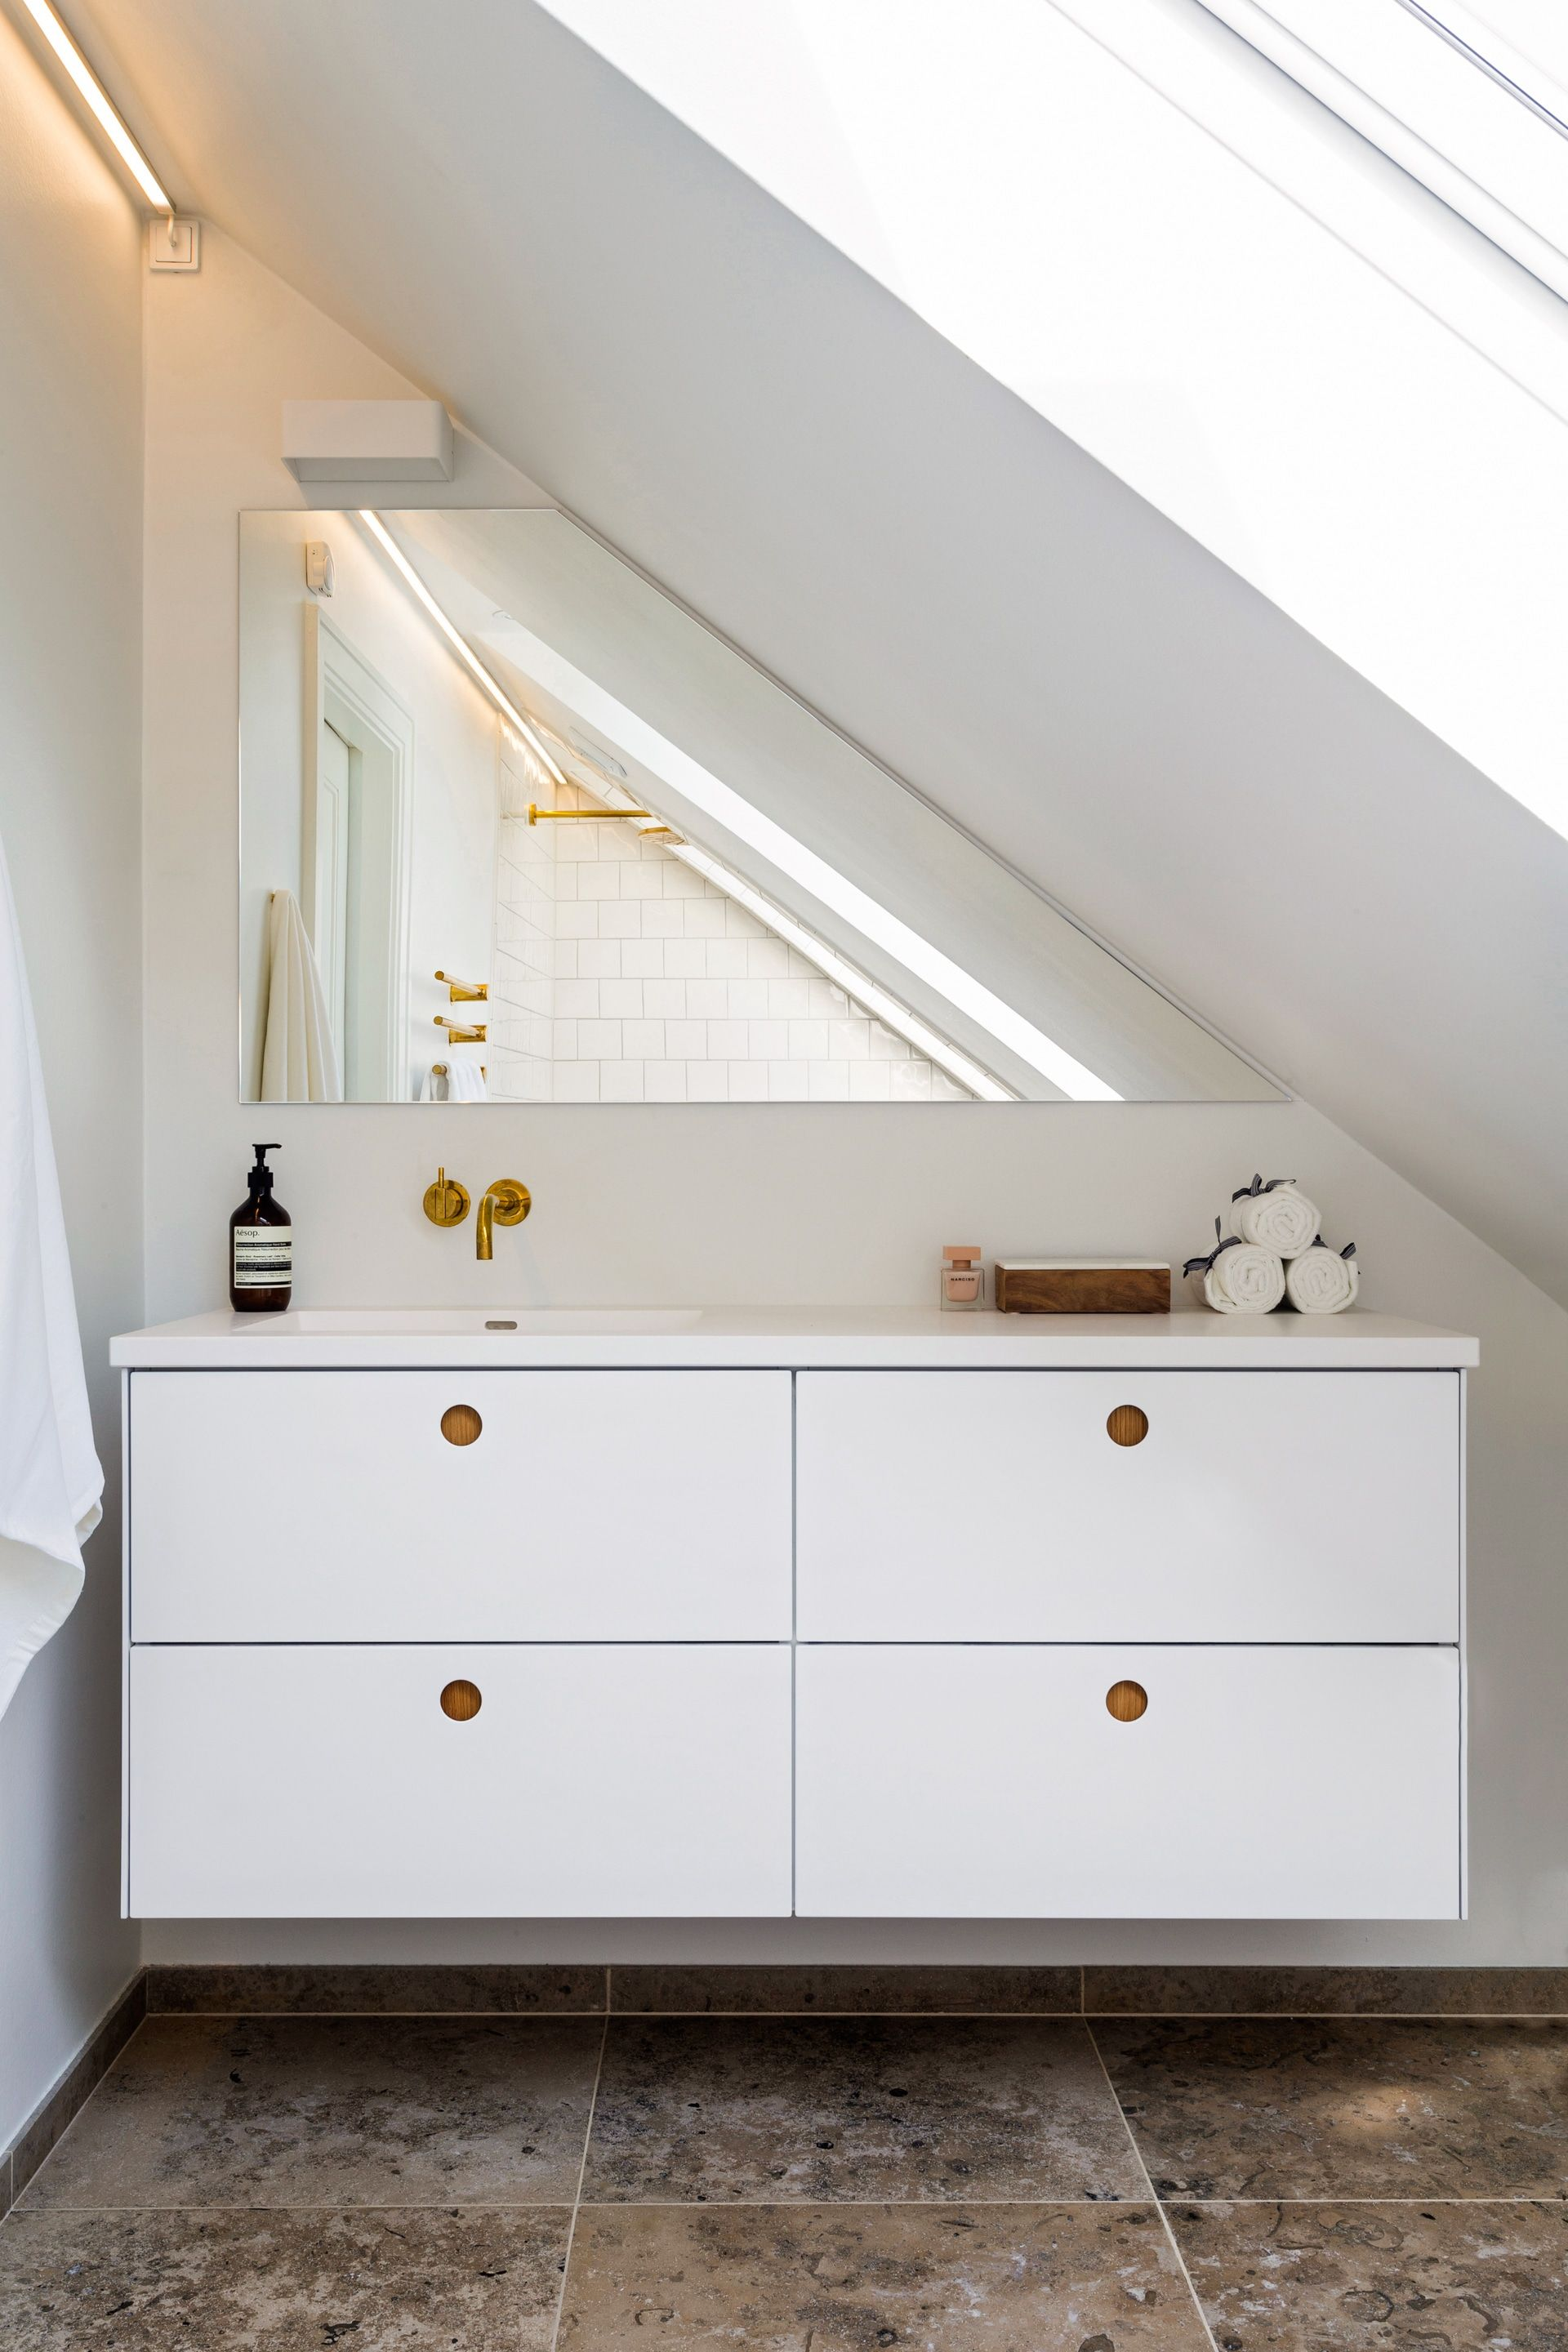 Ikea Badezimmer Godmorgon Bathroom In Hellerup Denmark Reform Bathroom In